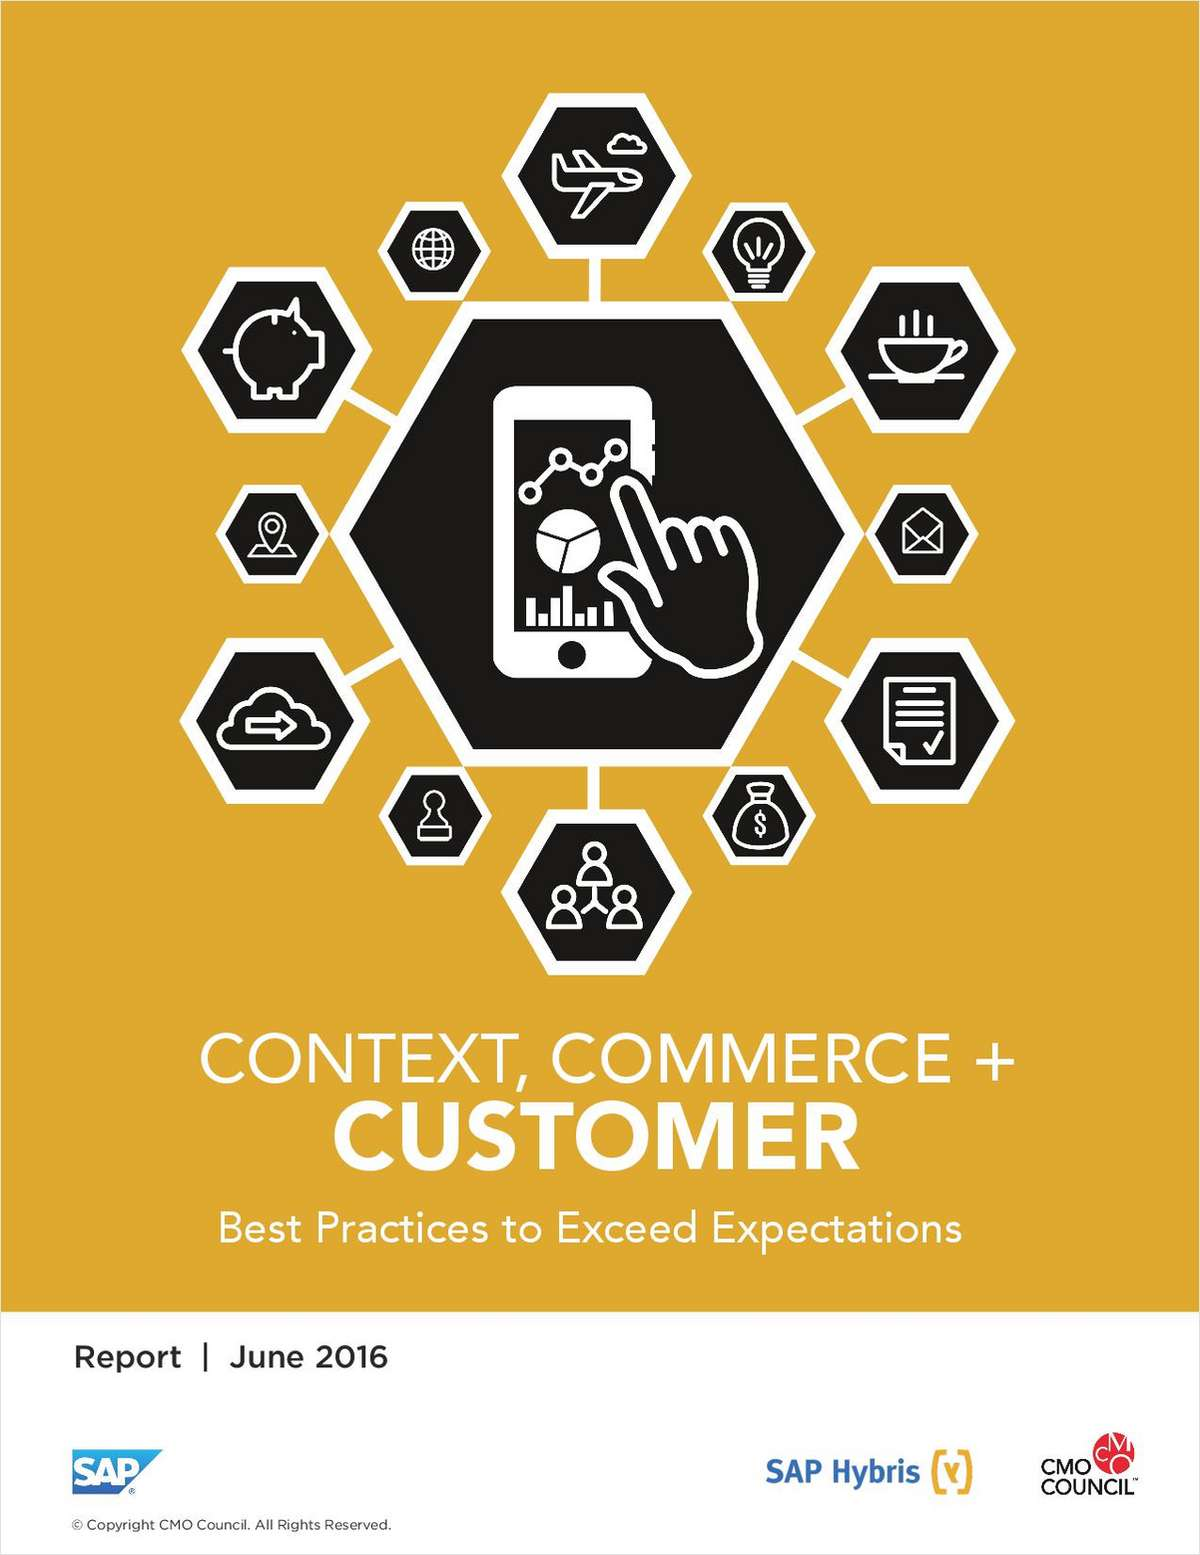 Context, Commerce and Customer: Best Practices to Exceed Expectations